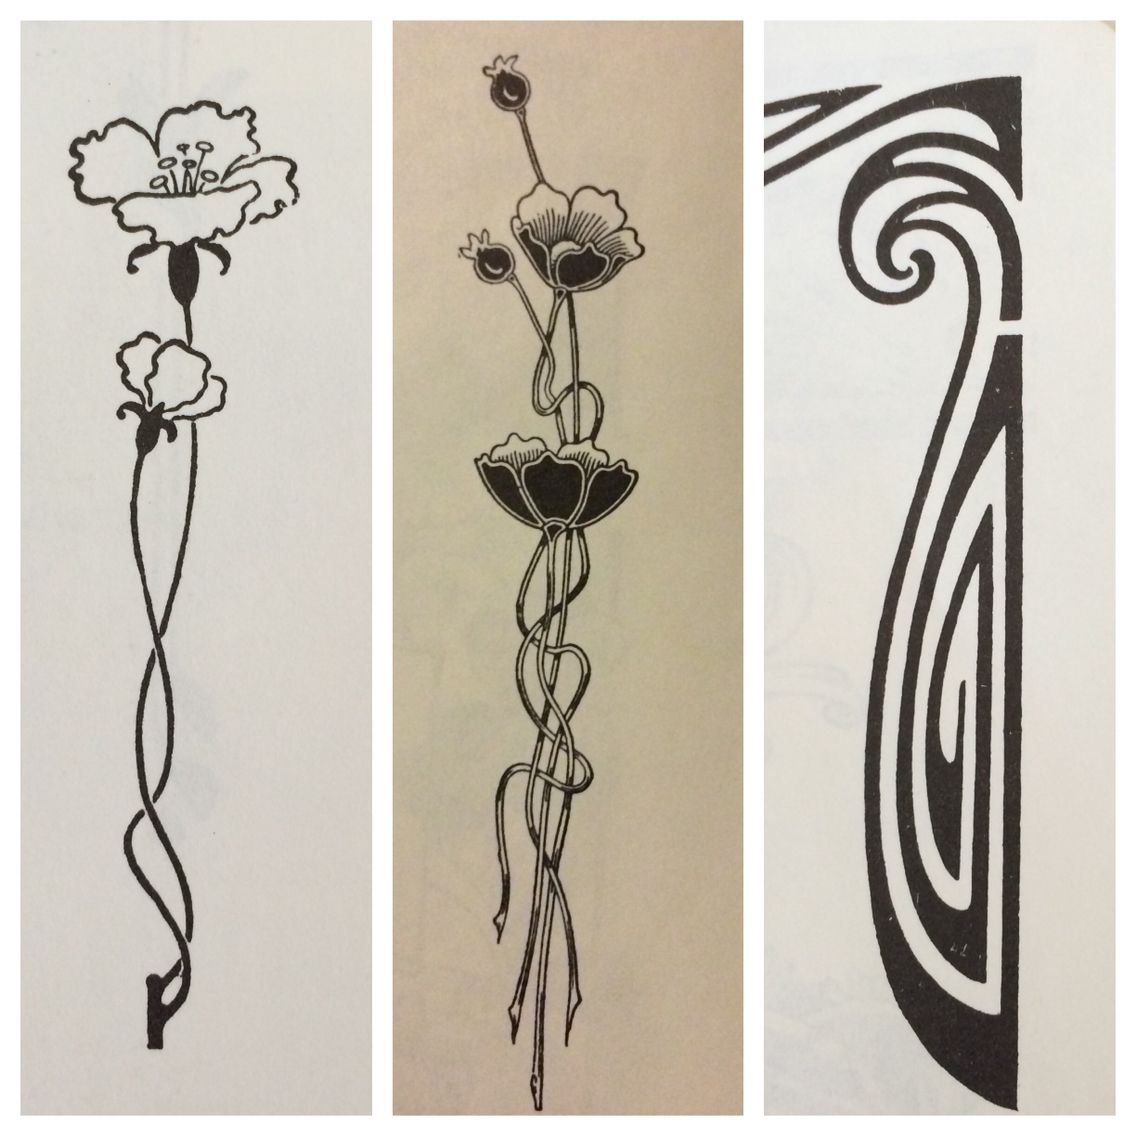 Art nouveau tattoo ideas. I think I would prefer to not use